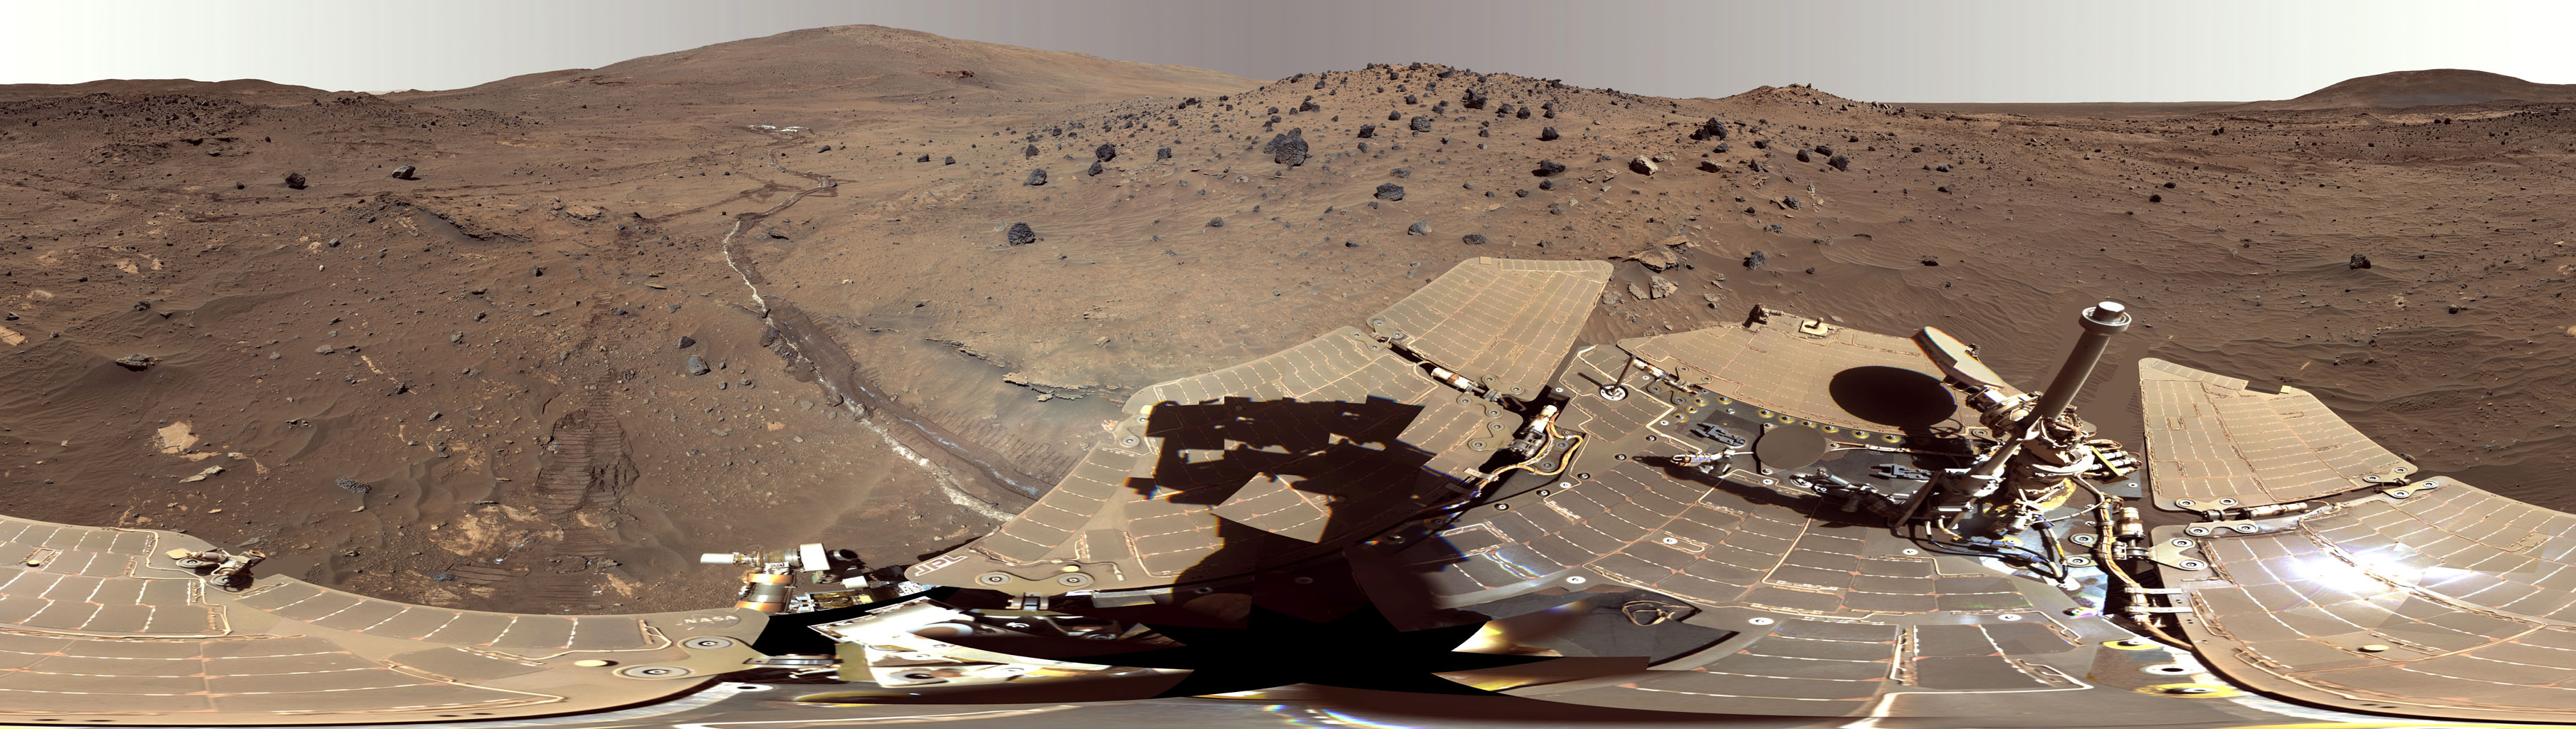 This false color view, called the 'McMurdo' panorama, from NASA's Mars Exploration Rover Spirit, where the rover stayed on a small hill known as 'Low Ridge' from April through October 2006.